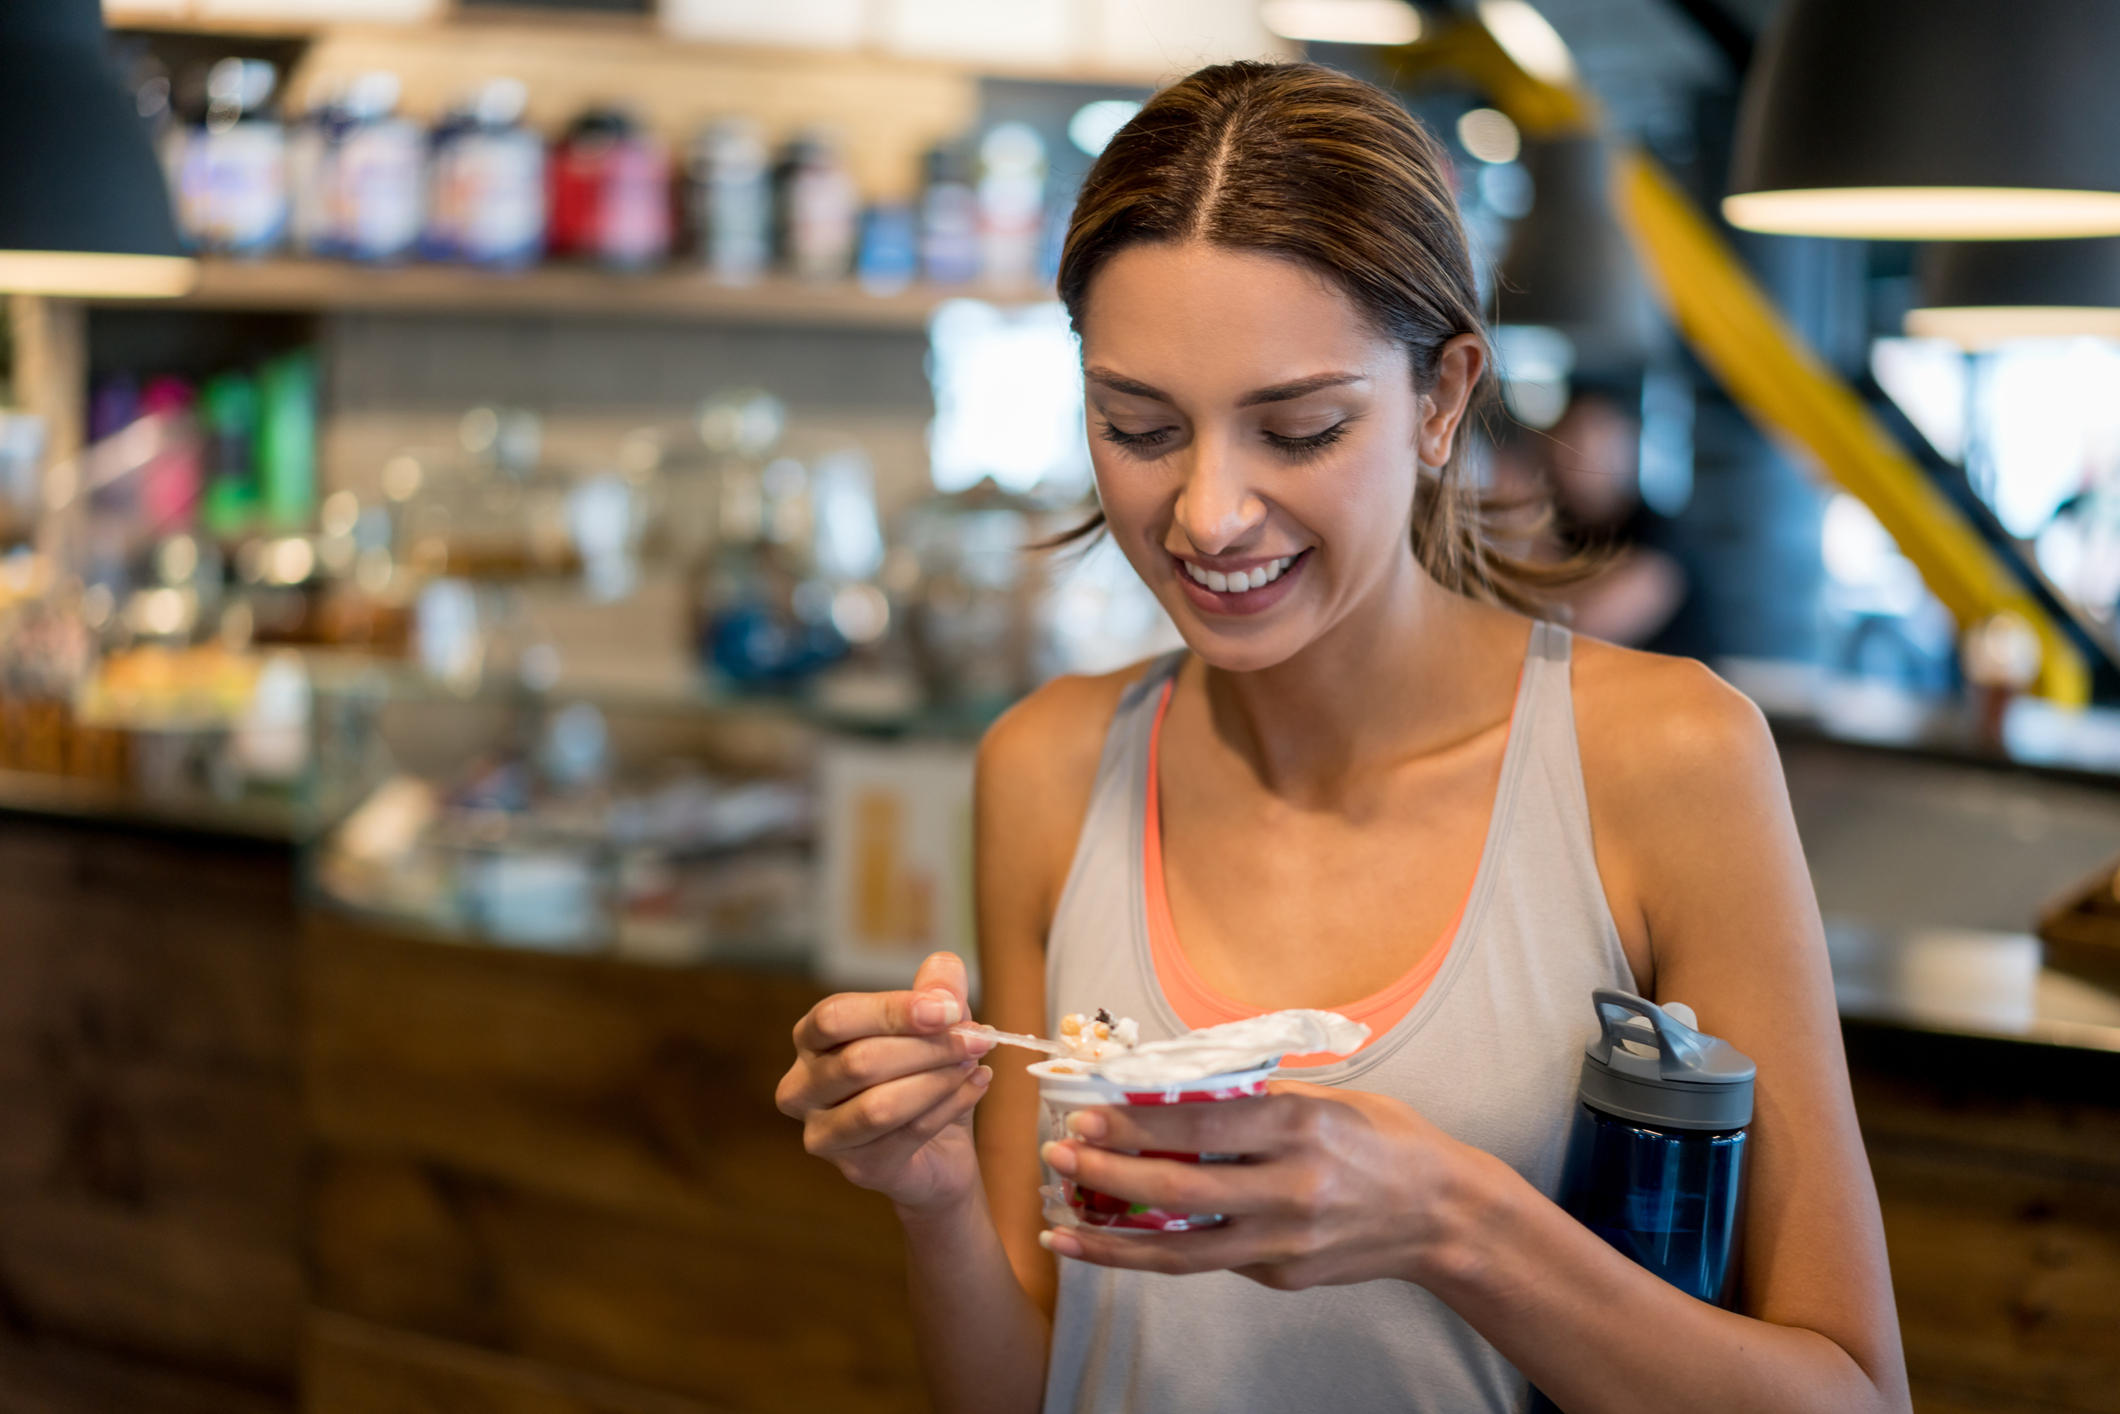 Woman eating a healthy snack at the gym